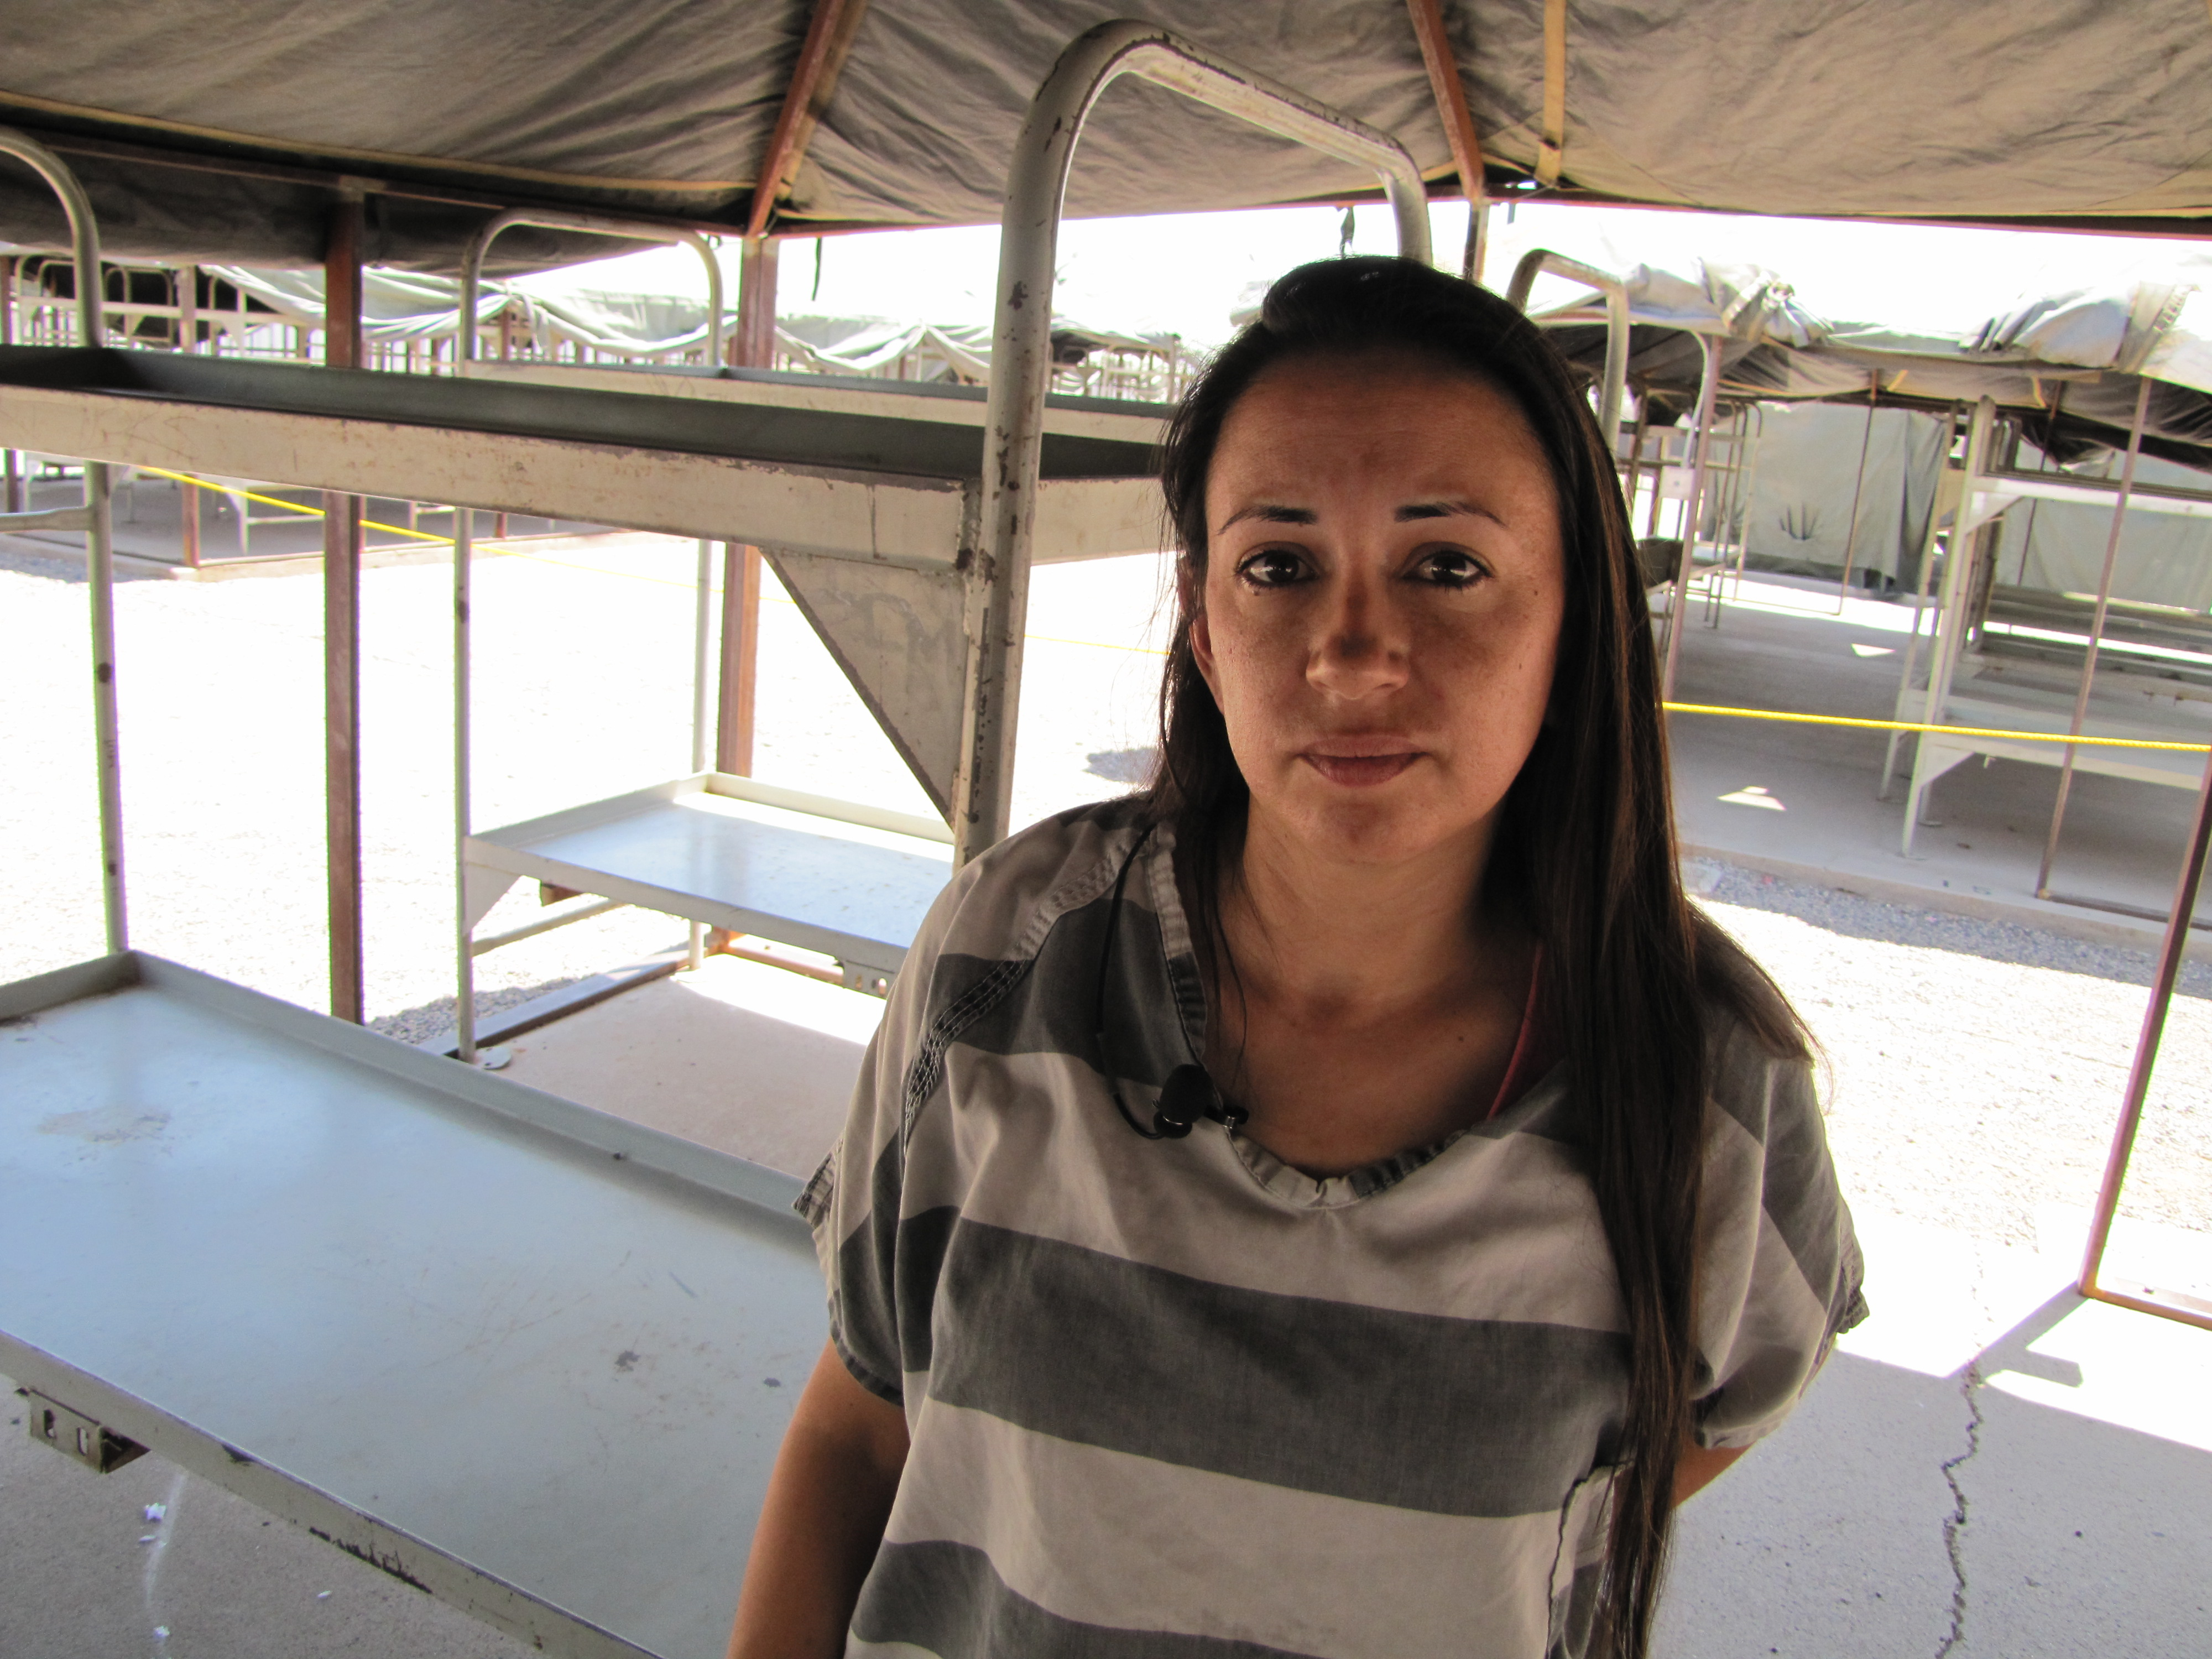 Cora Miranda 32 was wounded on Wednesday night while sleeping in her bunk at Tent City. Shots fired outside the compound ricocheted off her tentu0027s beams ...  sc 1 st  Fronteras Desk & After Tent City Celebration Inmate Wounded At Jail | Fronteras Desk